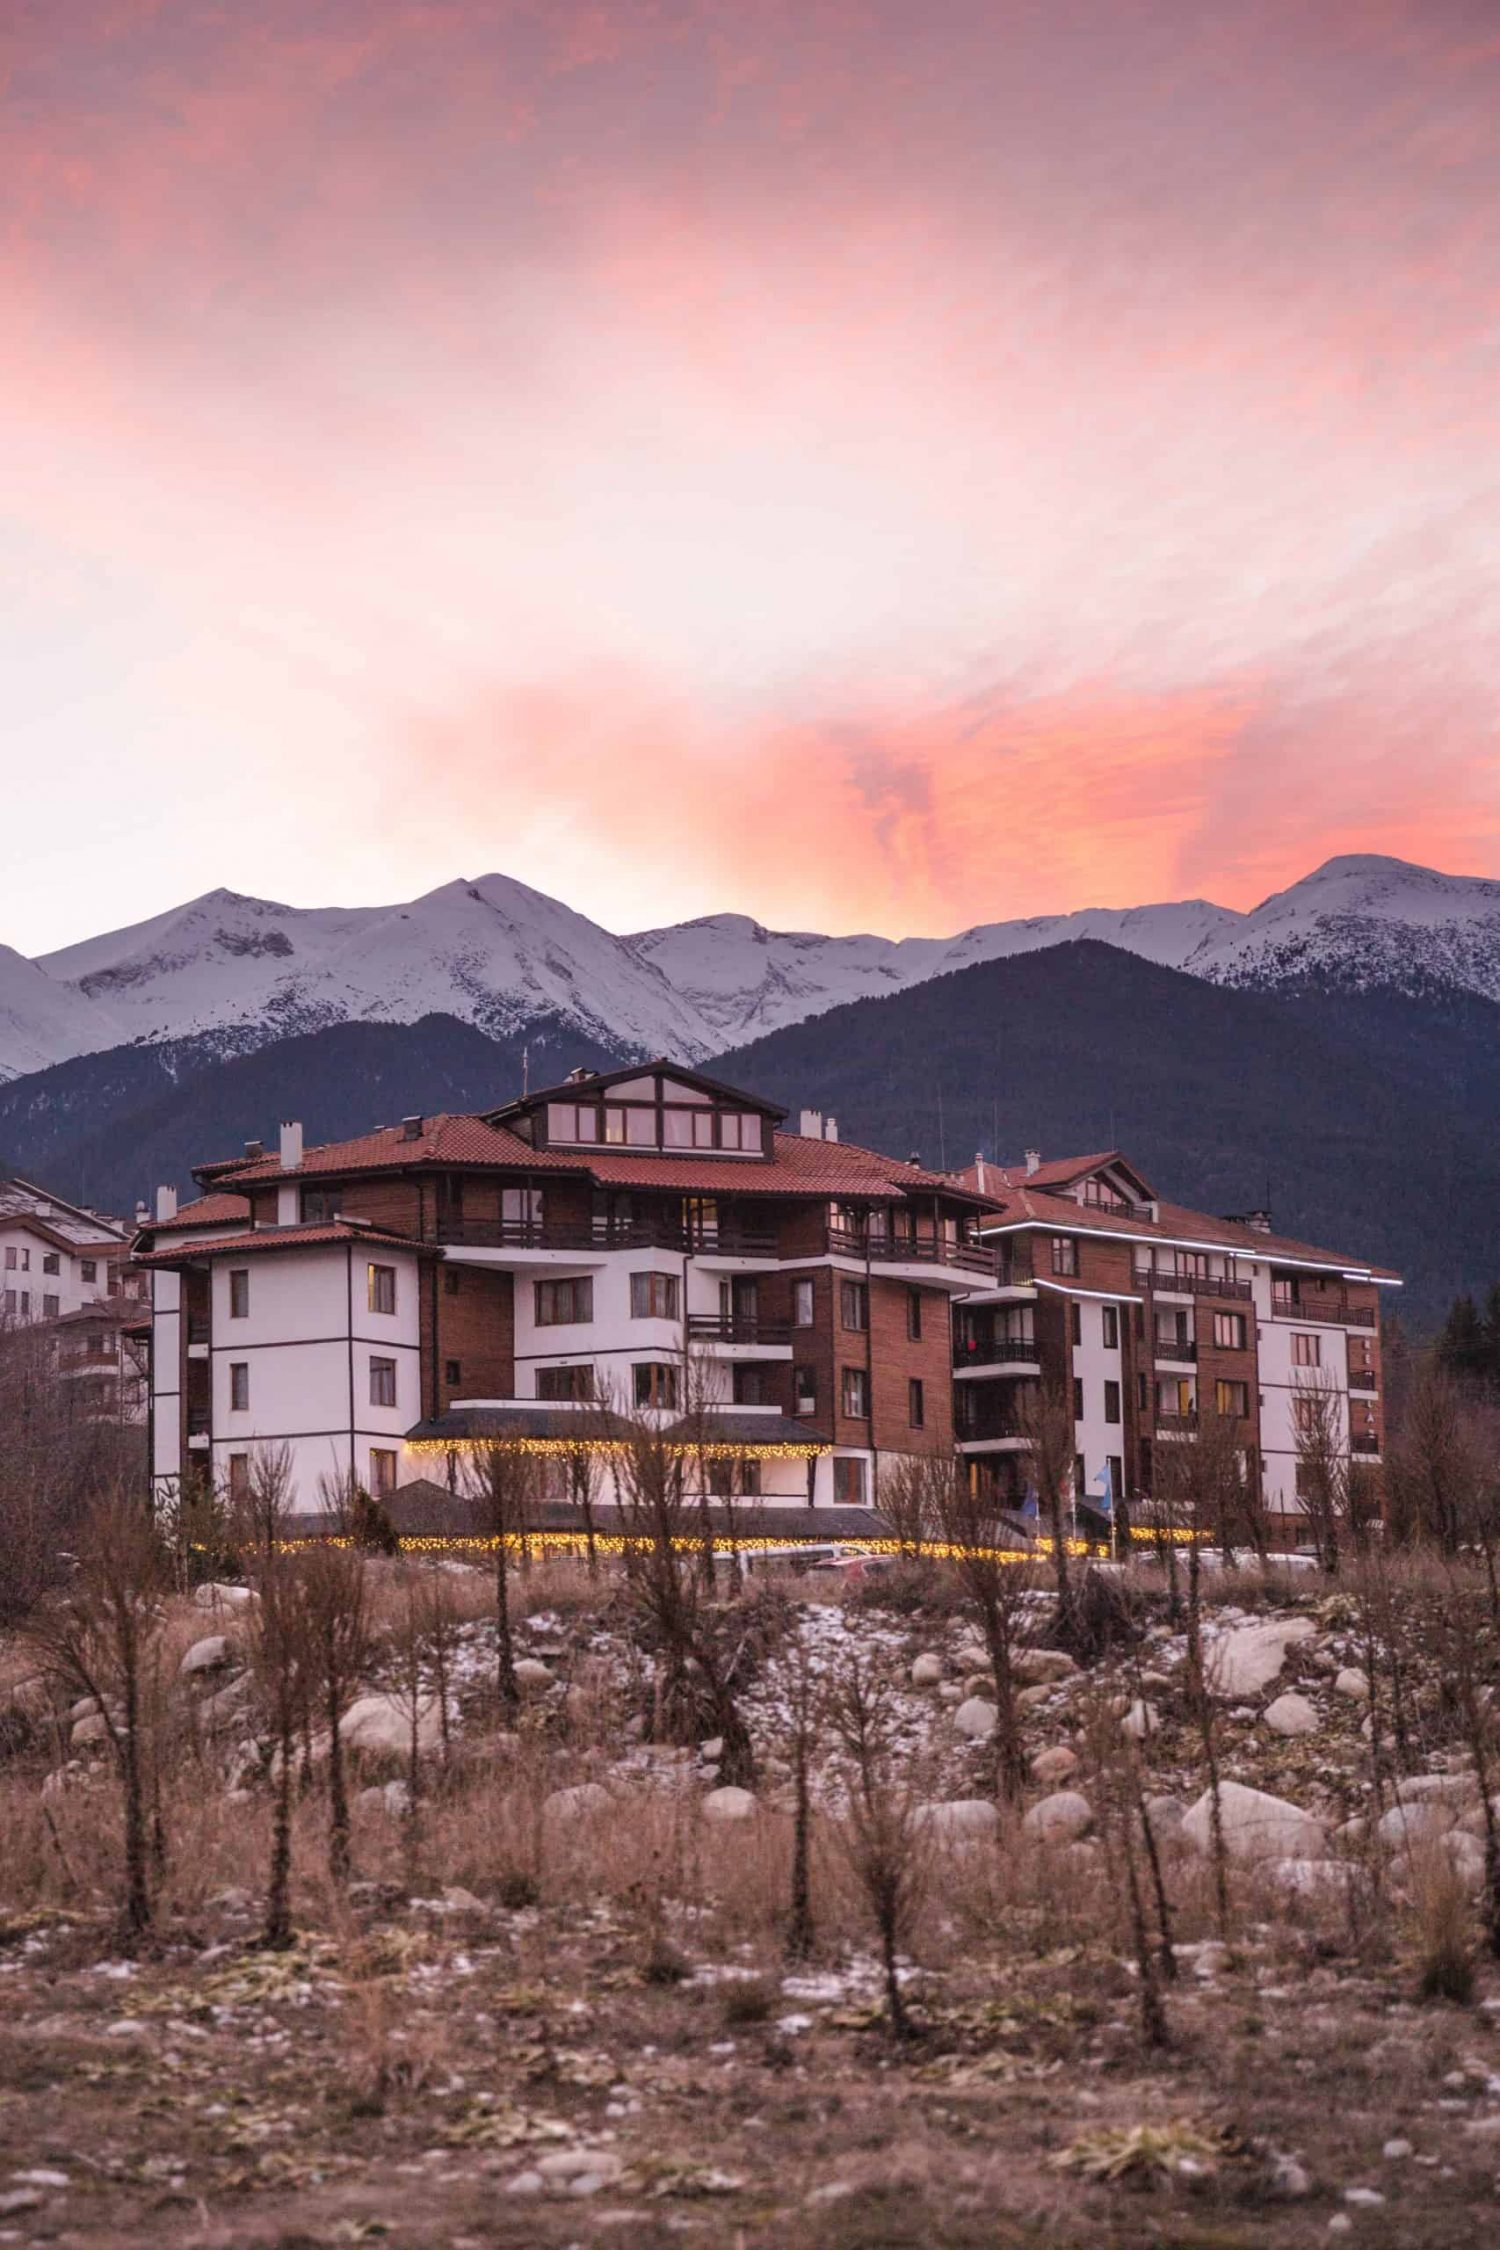 Bansko, Bulgaria at sunset. Bansko is a great adventure destination with mountains and nature, and a great place to visit in 2020!